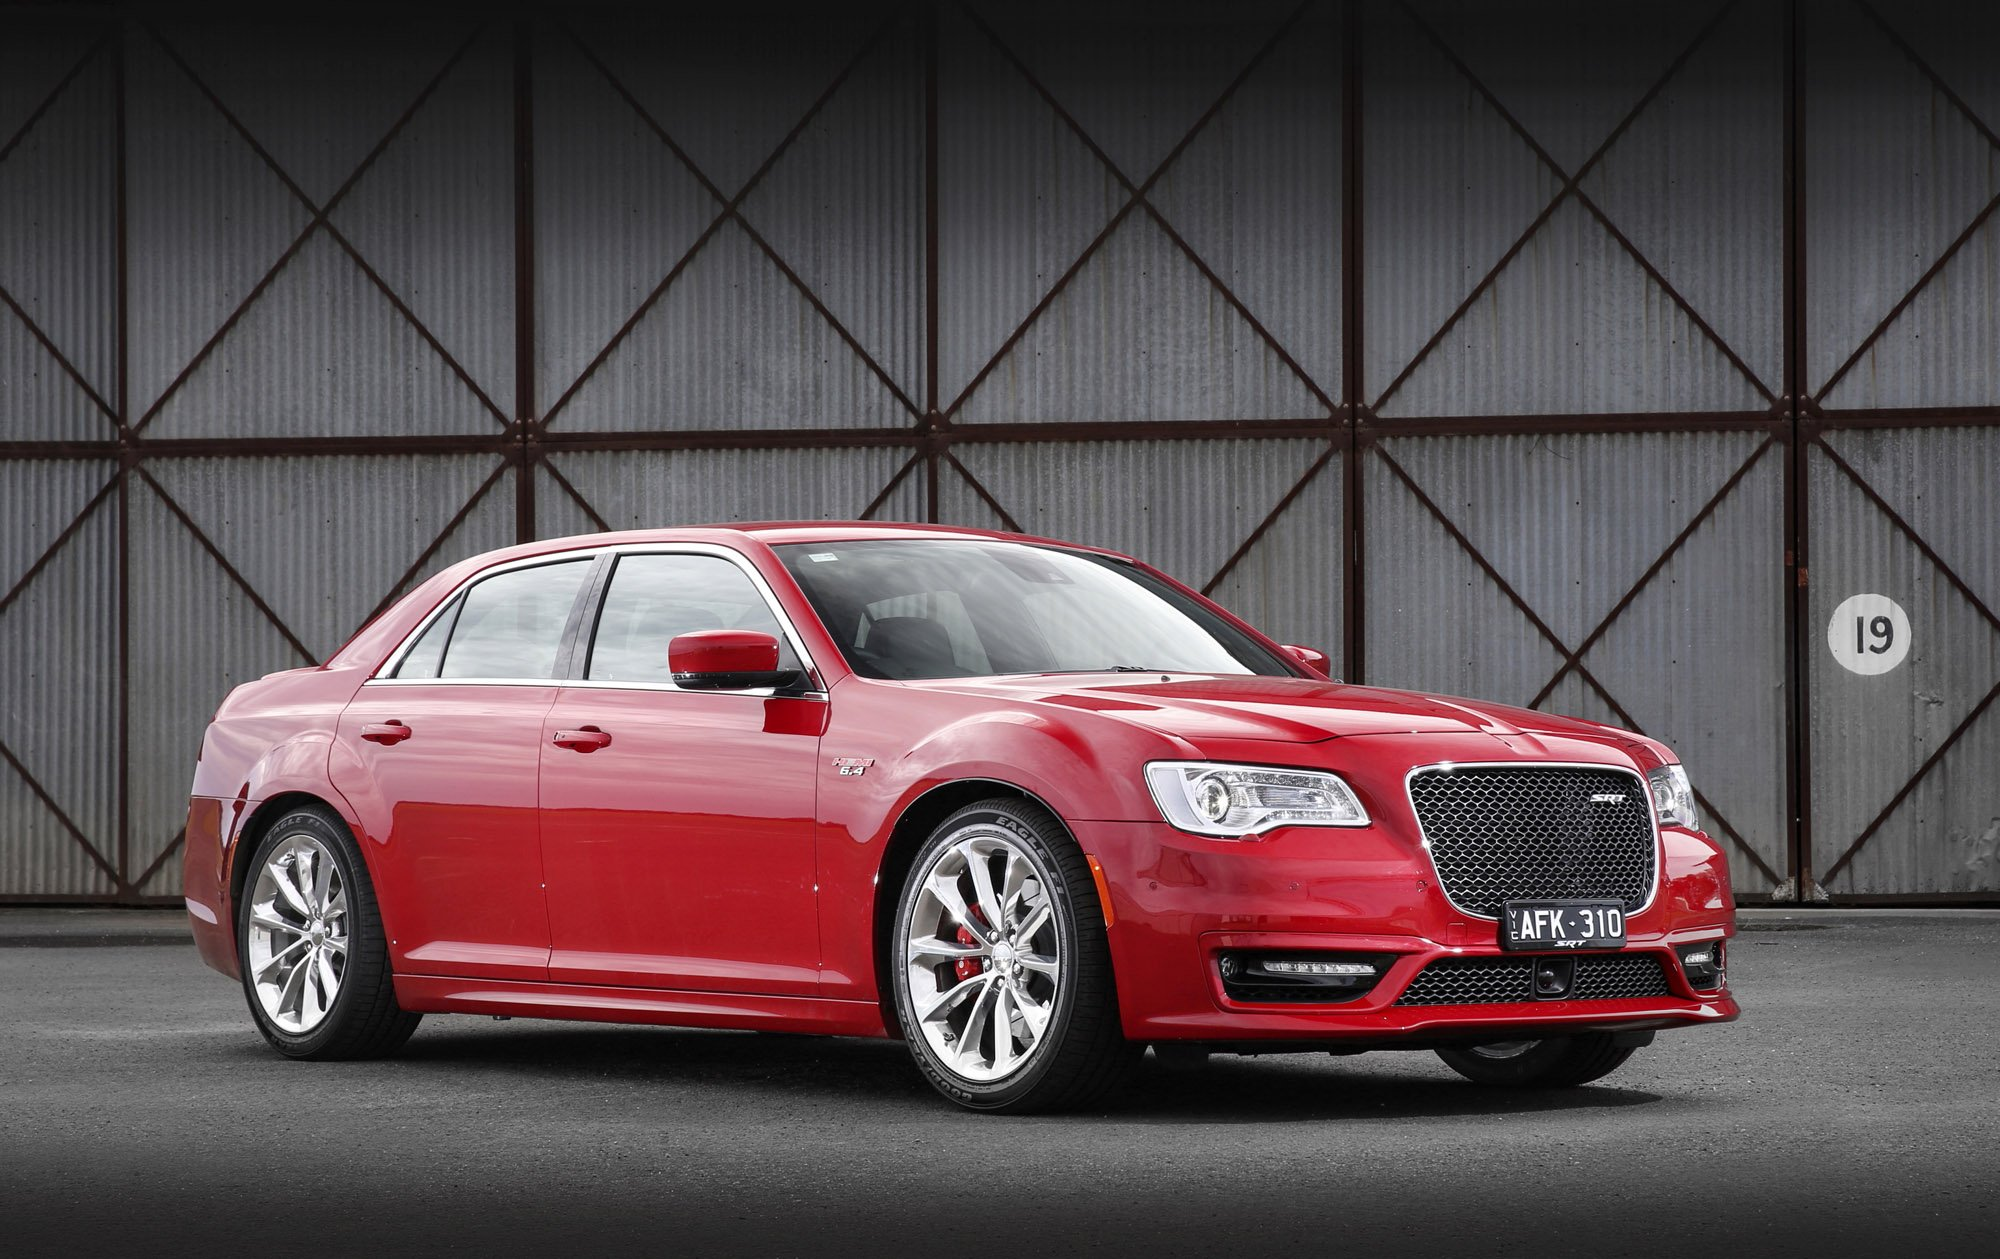 2015 chrysler 300 srt pricing and specifications photos 1 of 74. Black Bedroom Furniture Sets. Home Design Ideas